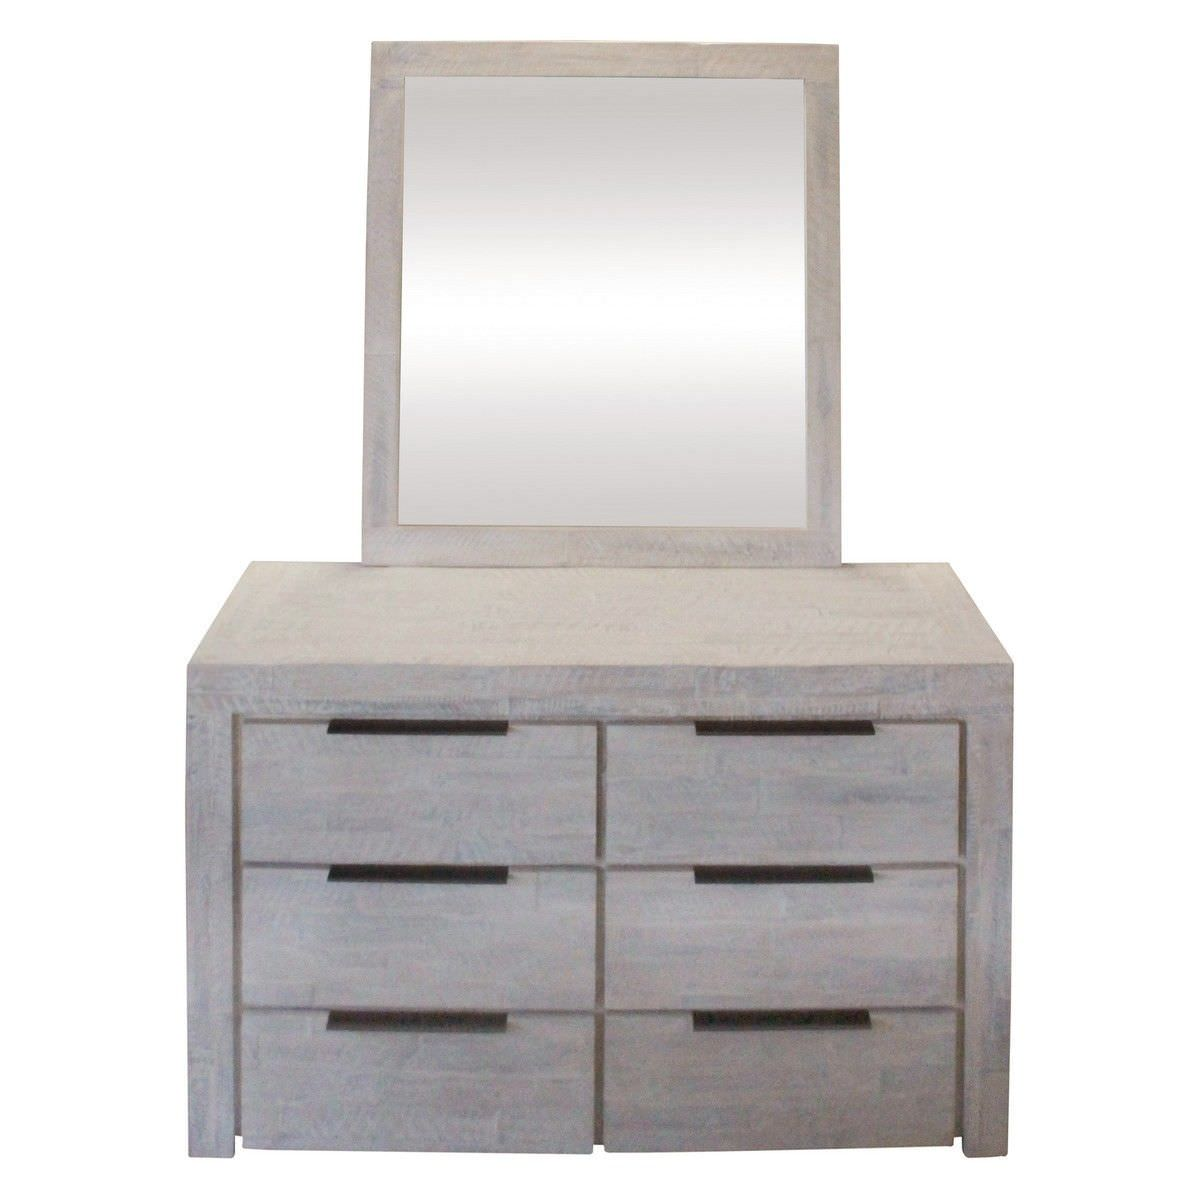 Romford Acacia Timber 6 Drawer Dresser with Mirror